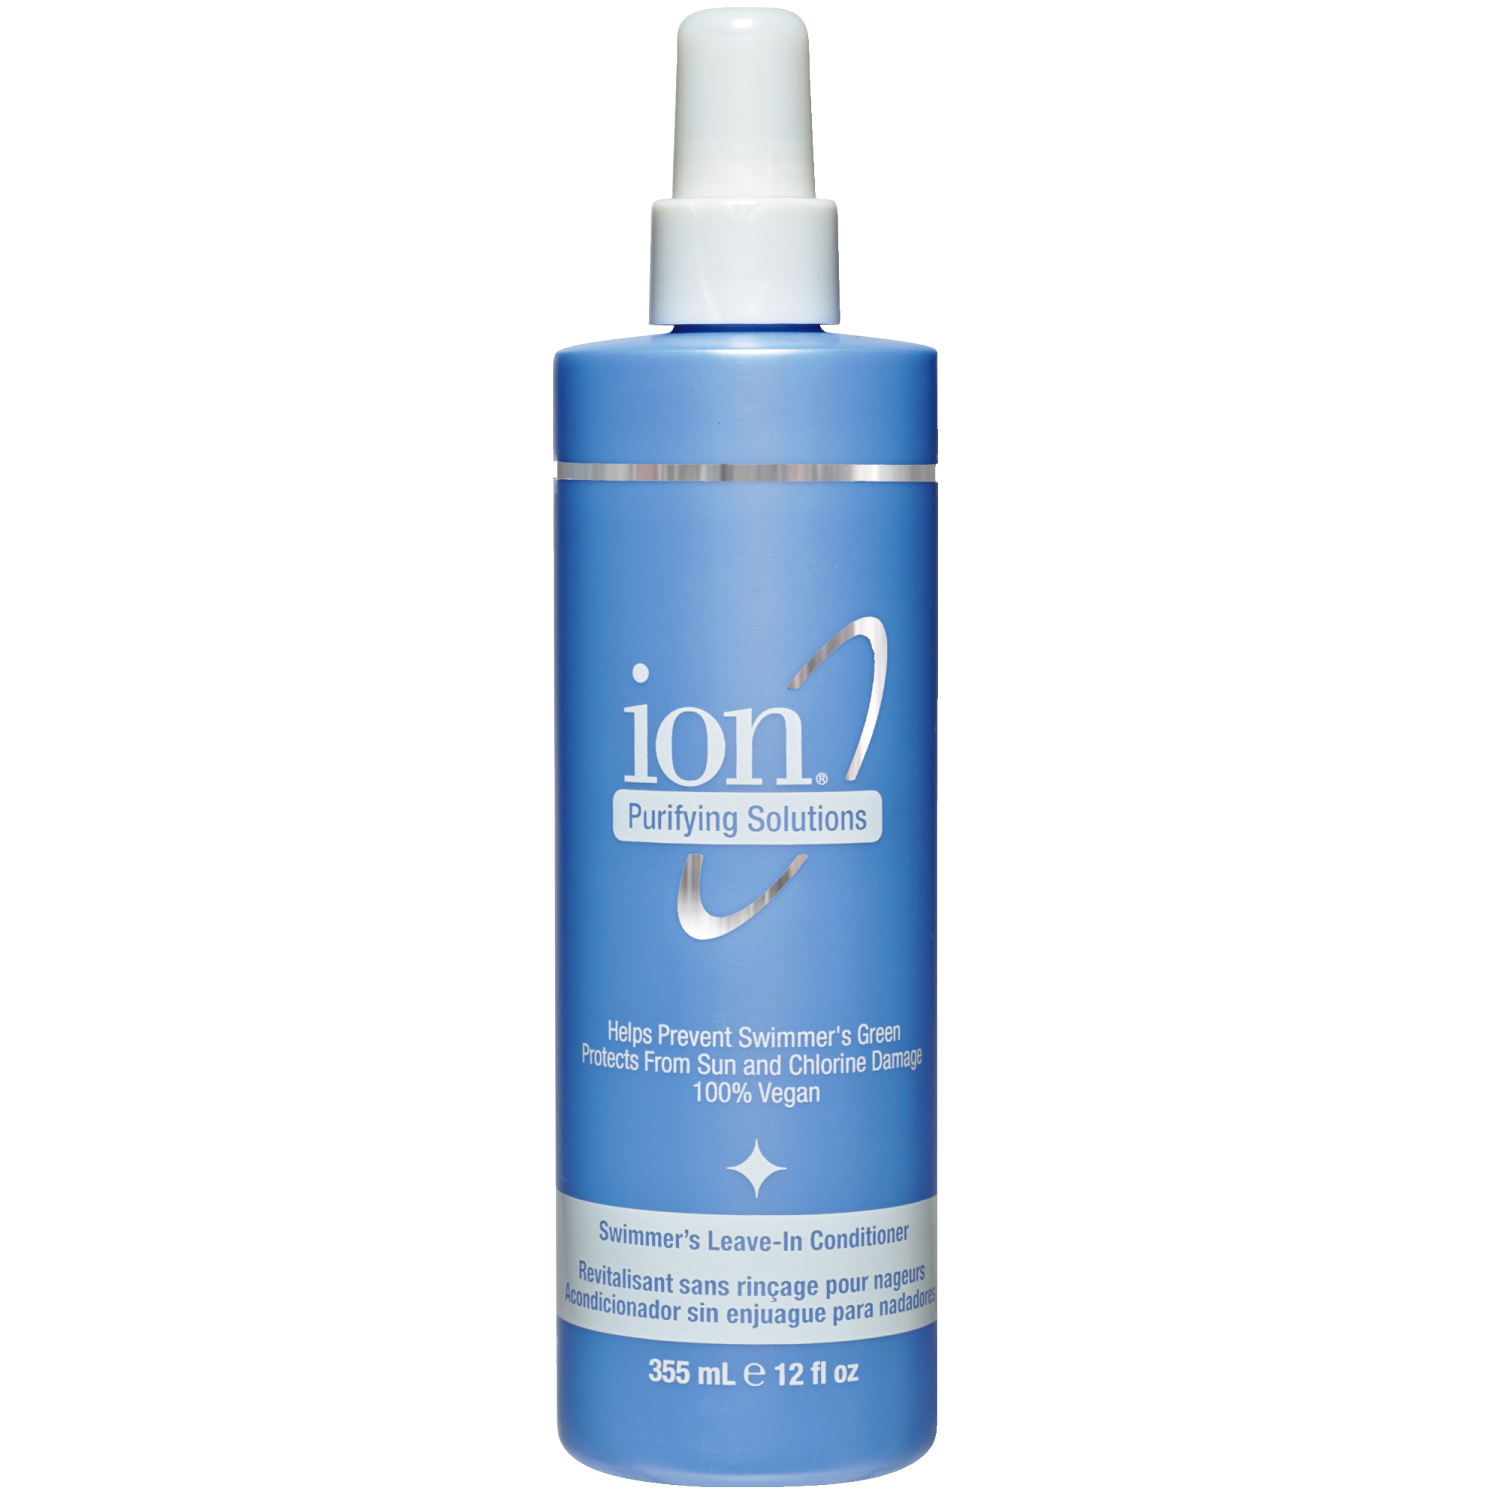 9f4d3b55090 Ion Swimmer's Leave-in Conditioner helps prevent swimmer's green and  protects hair from sun and chlorine damage.